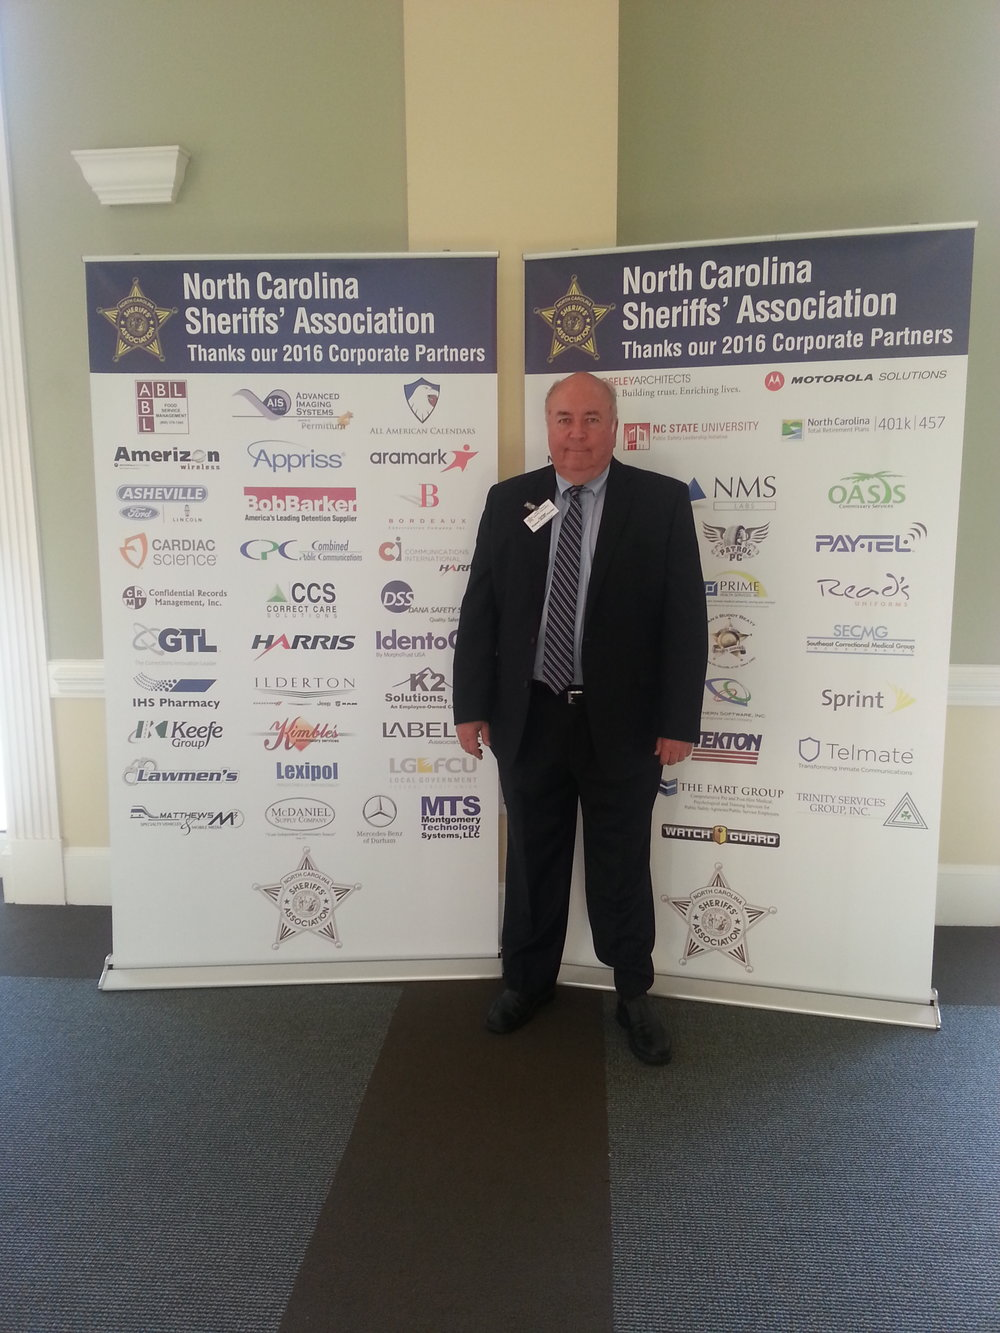 Visiting with the NC Sheriff's Association